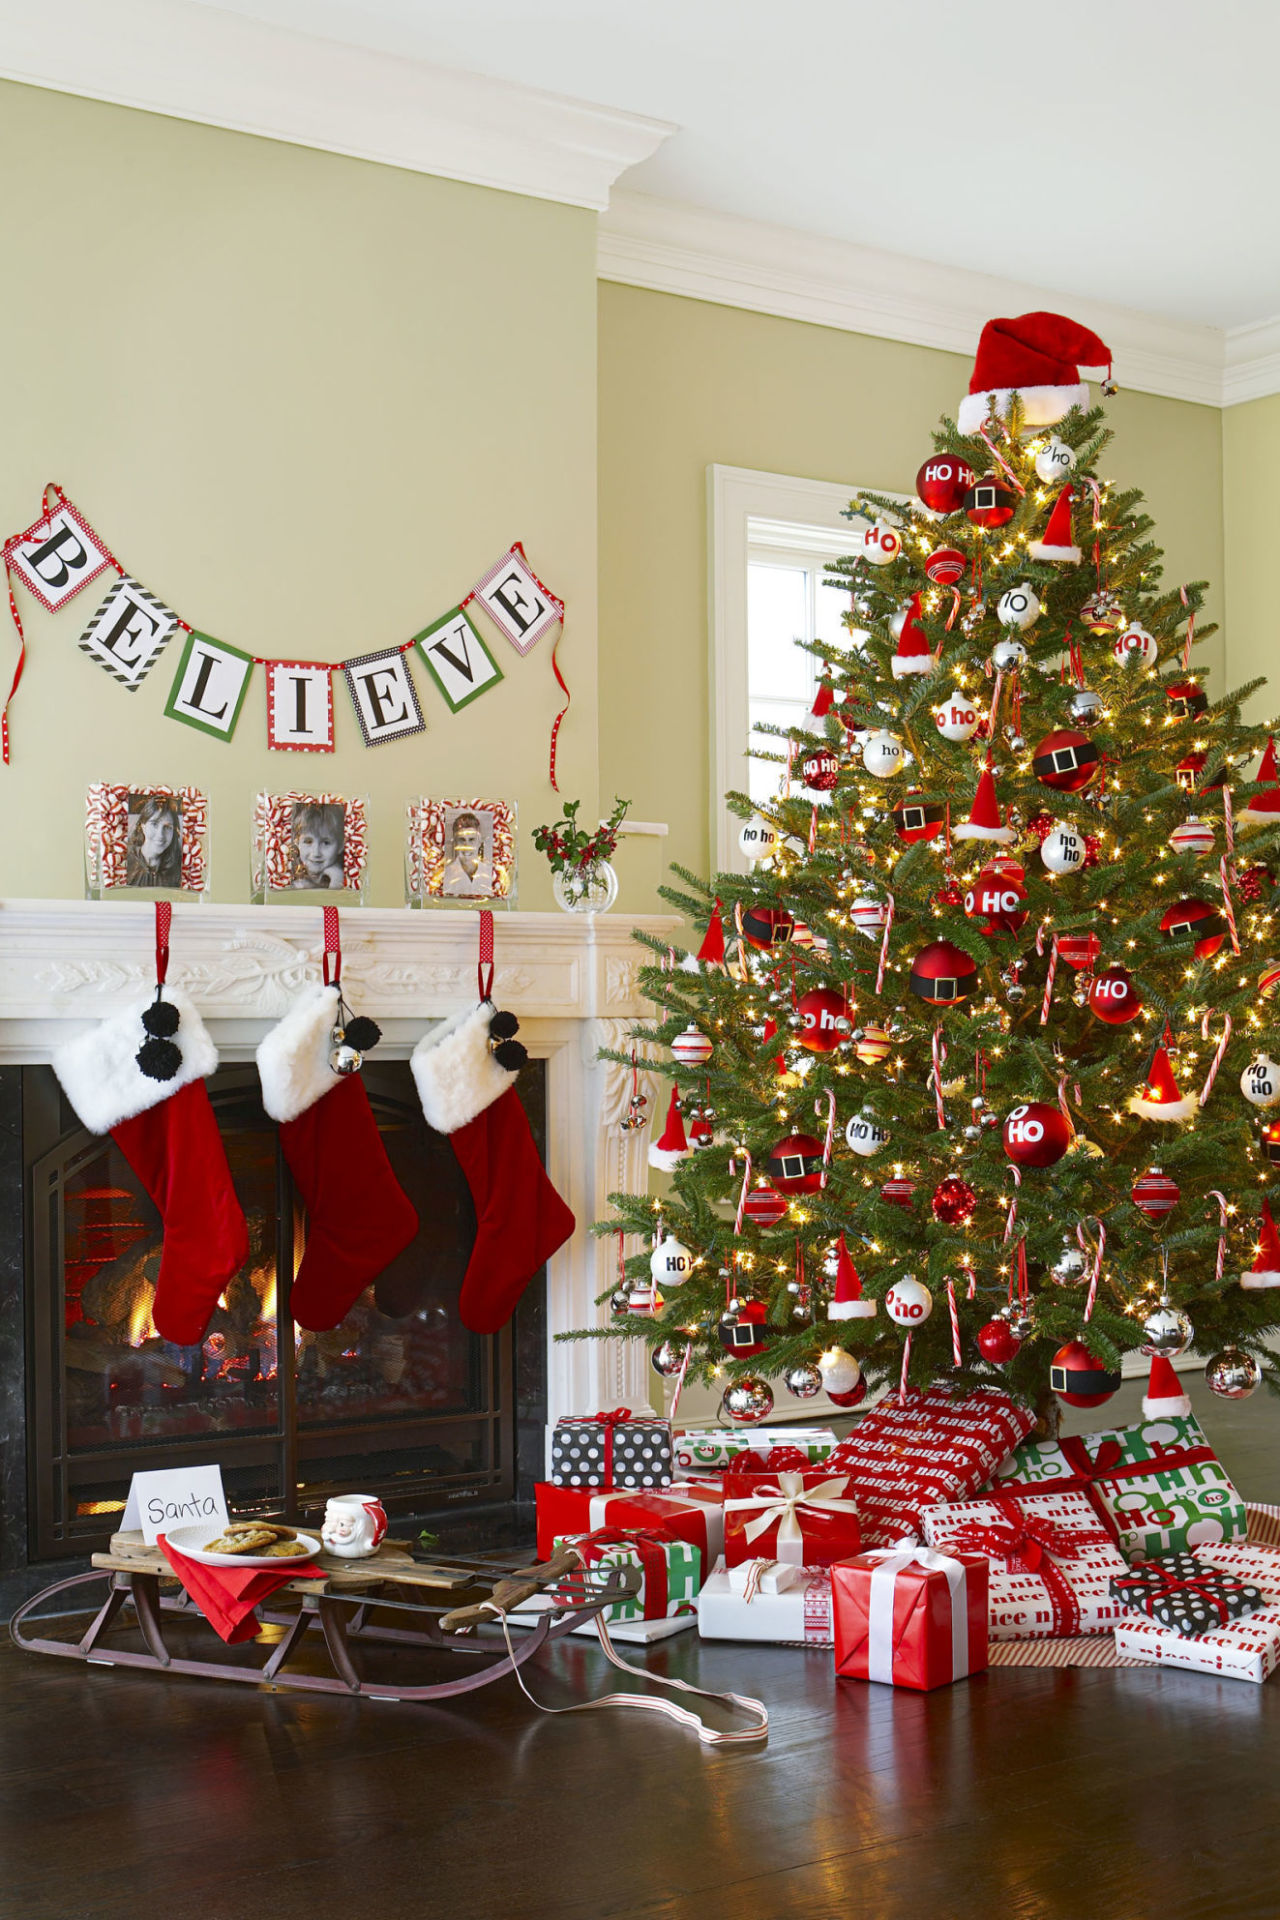 Christmas tree decorations images - 35 Christmas Tree Decoration Ideas Pictures Of Beautiful Christmas Trees